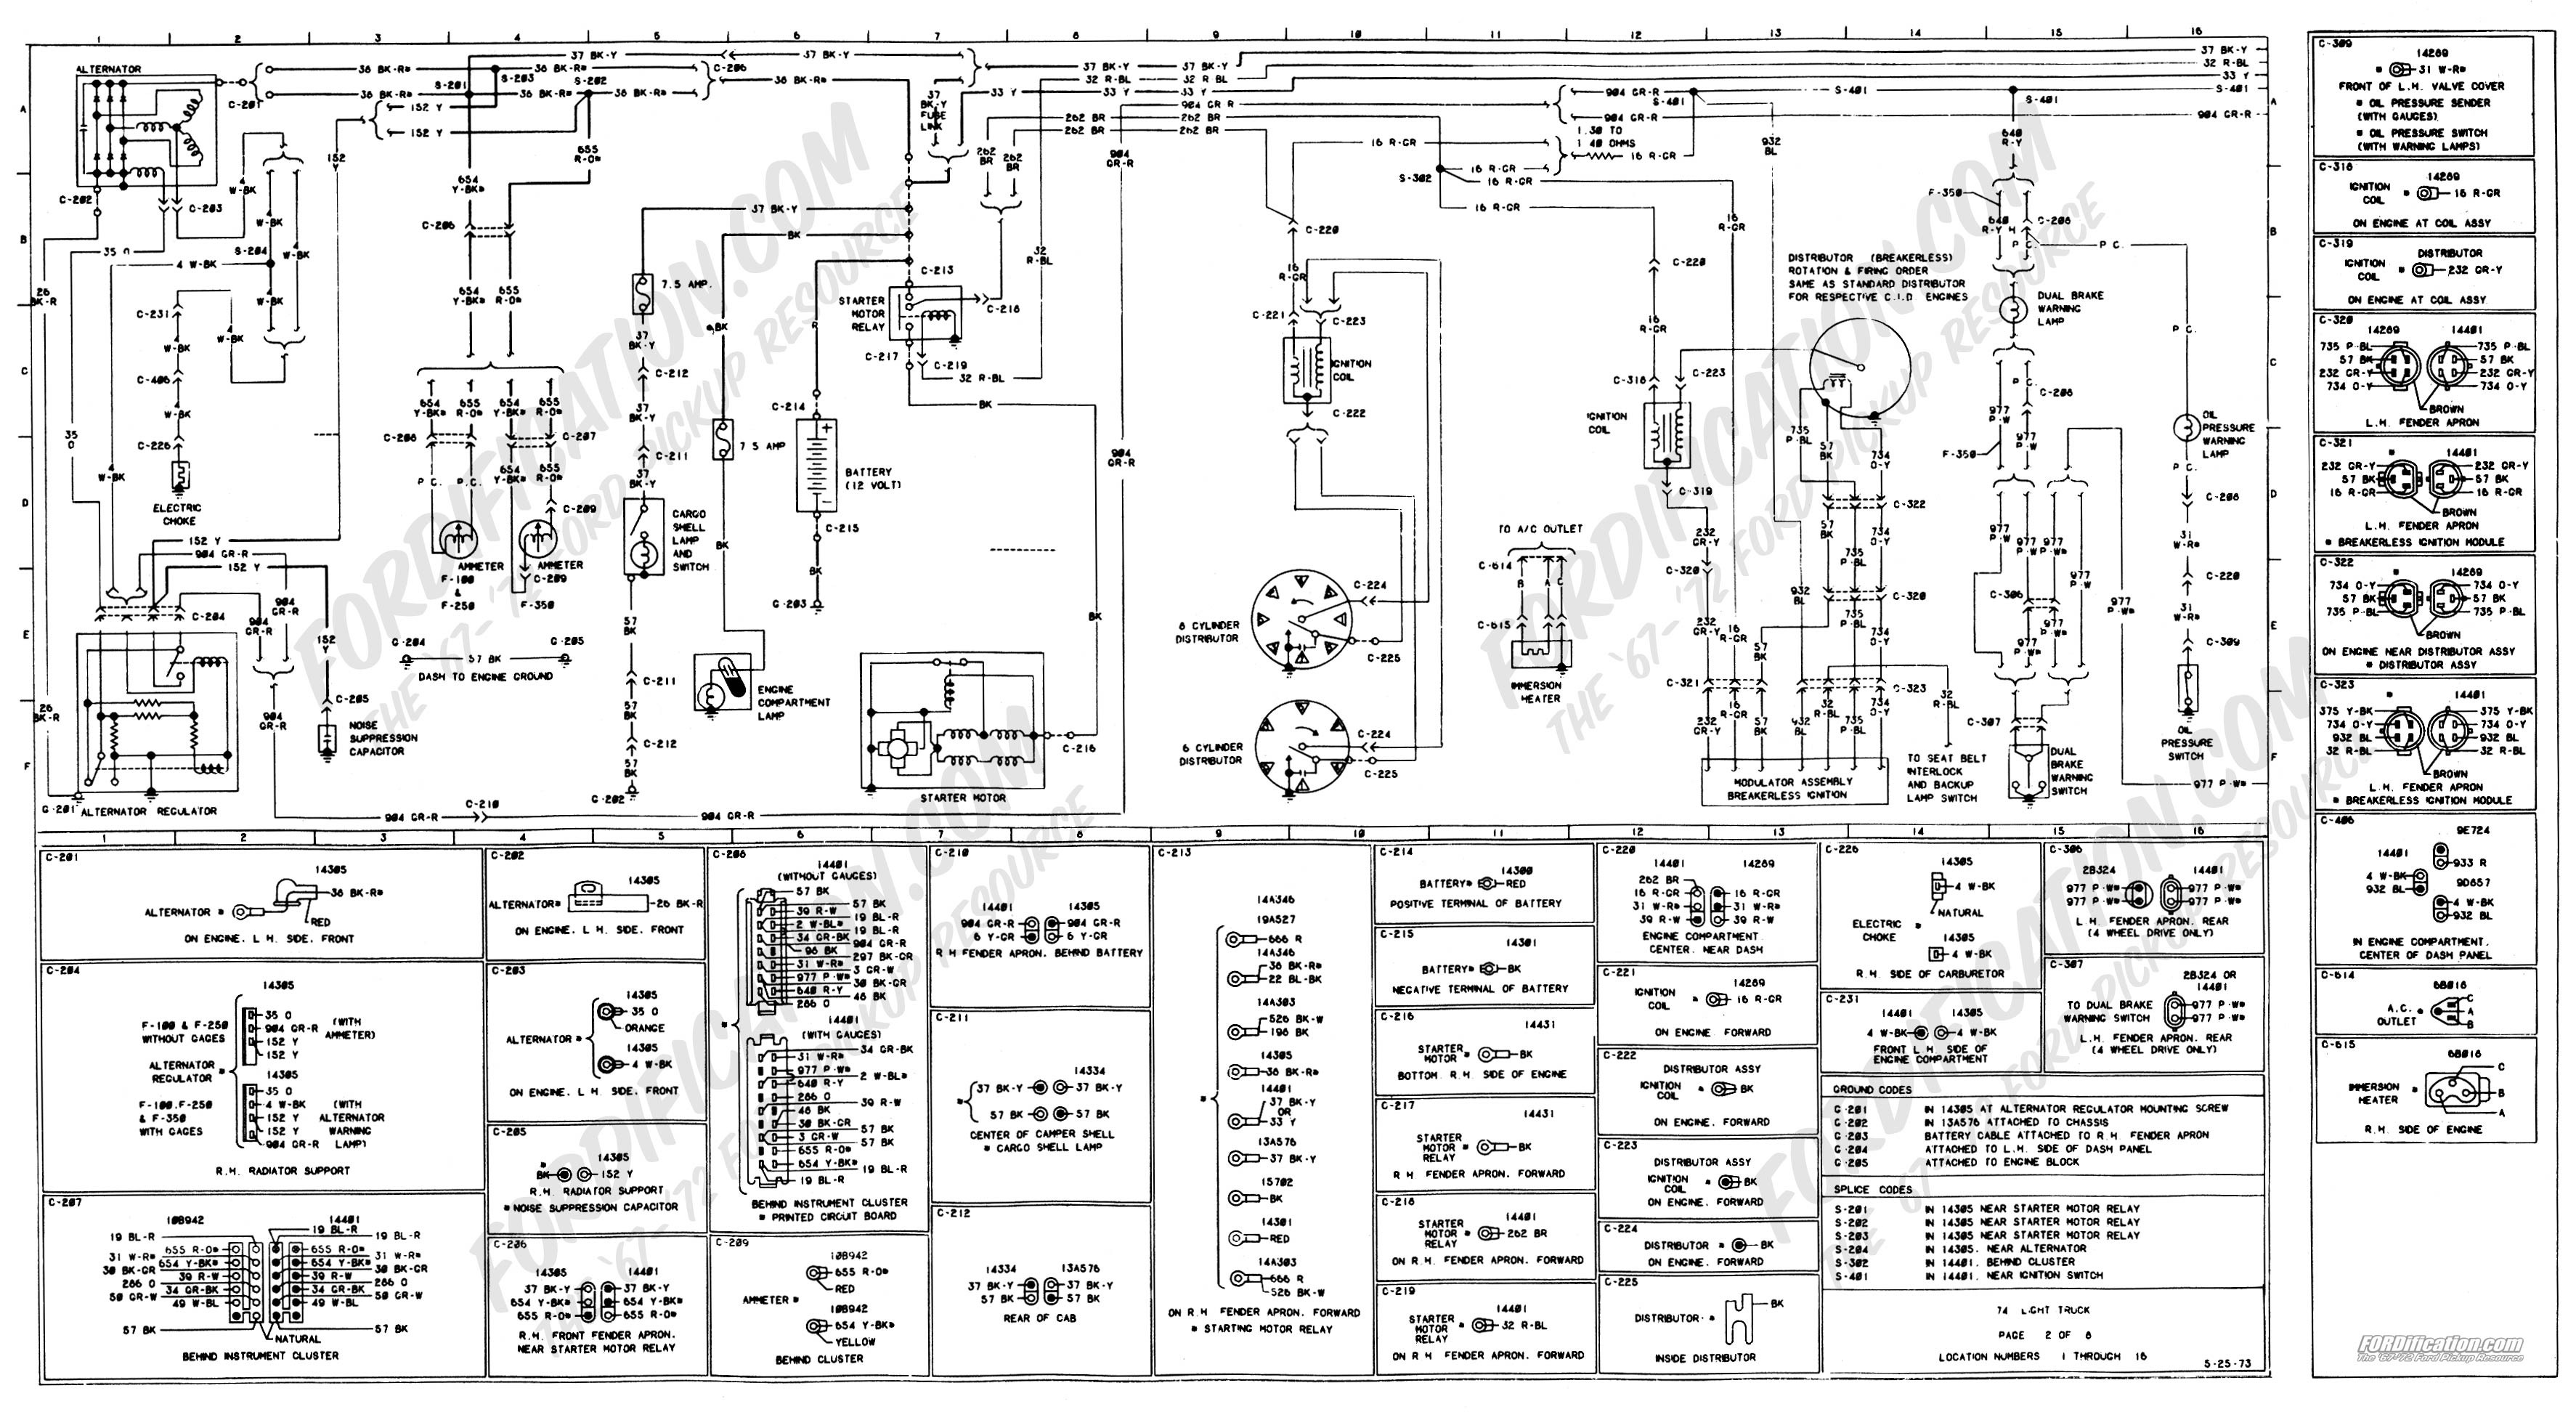 1997 Chevrolet Neutral Safety Switch Wiring Diagram Starting Know 1977 Dodge Warlock Sterling Truck Diagrams For Alternator Best Site